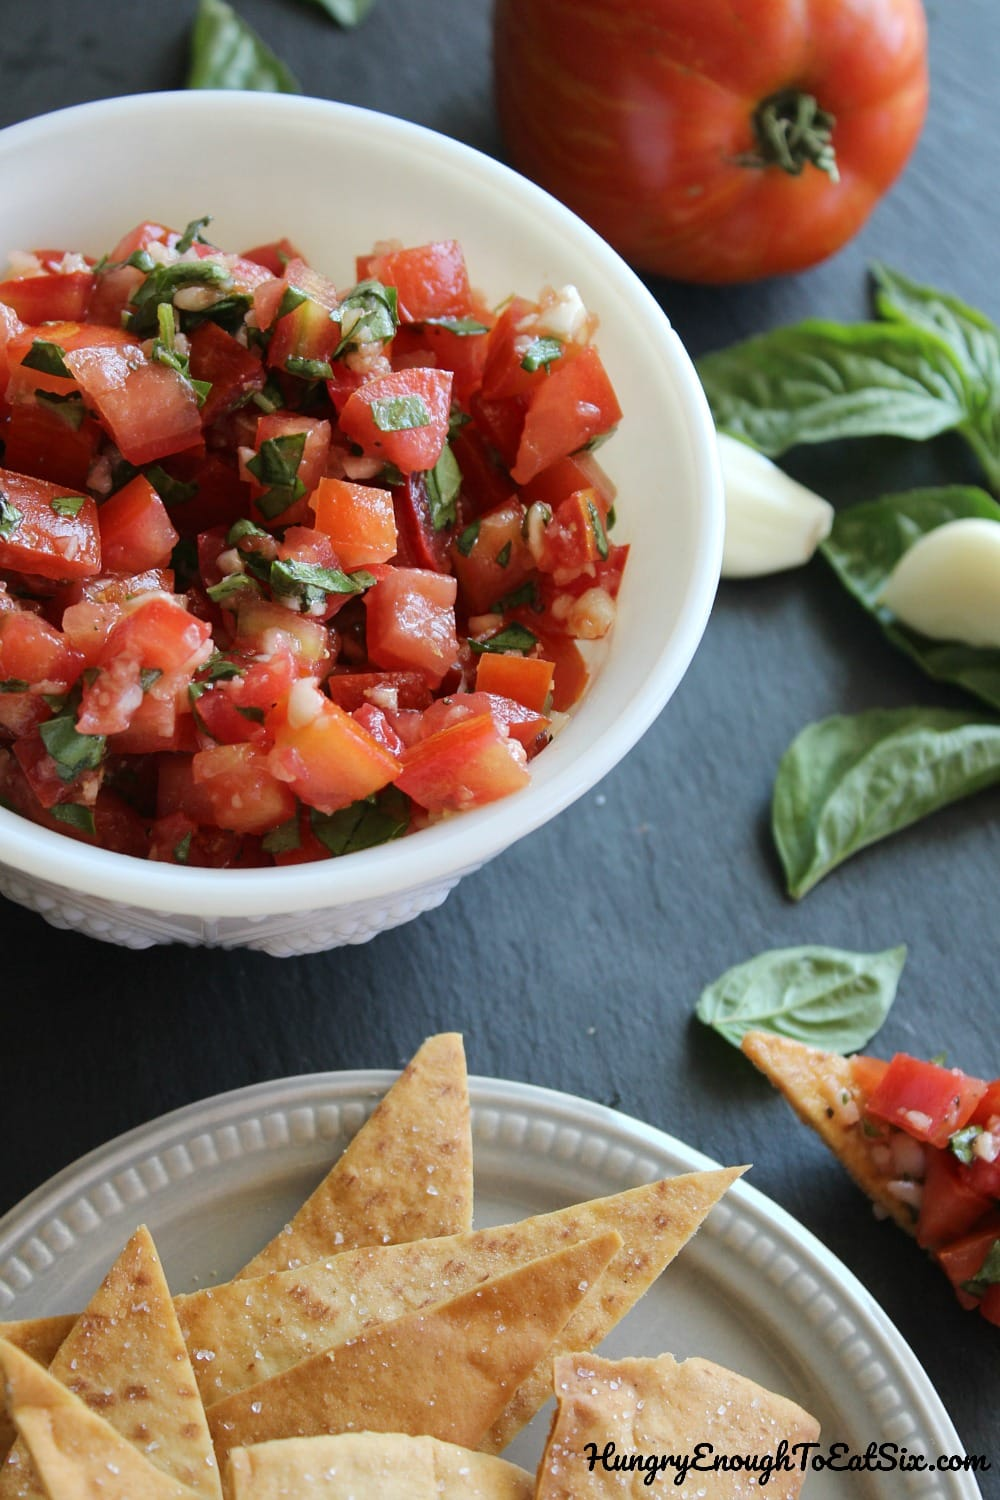 Plate of pita chips next to a bowl of tomato salsa